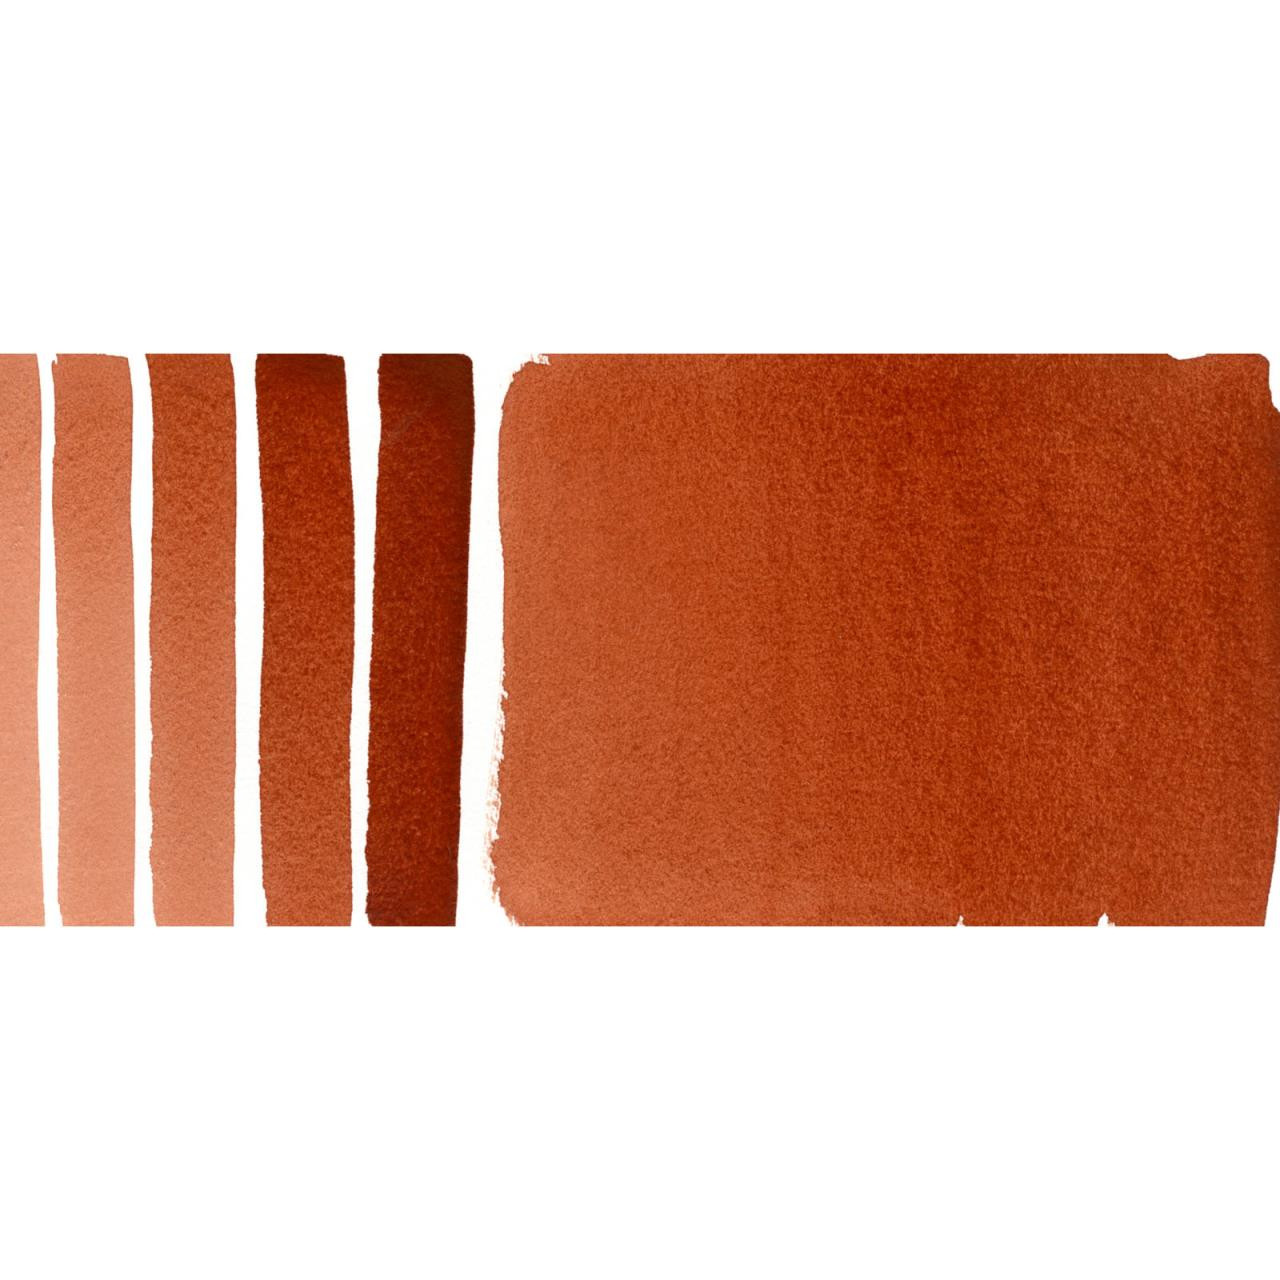 English Red Ochre, DANIEL SMITH Extra Fine Watercolors 15ml Tubes -